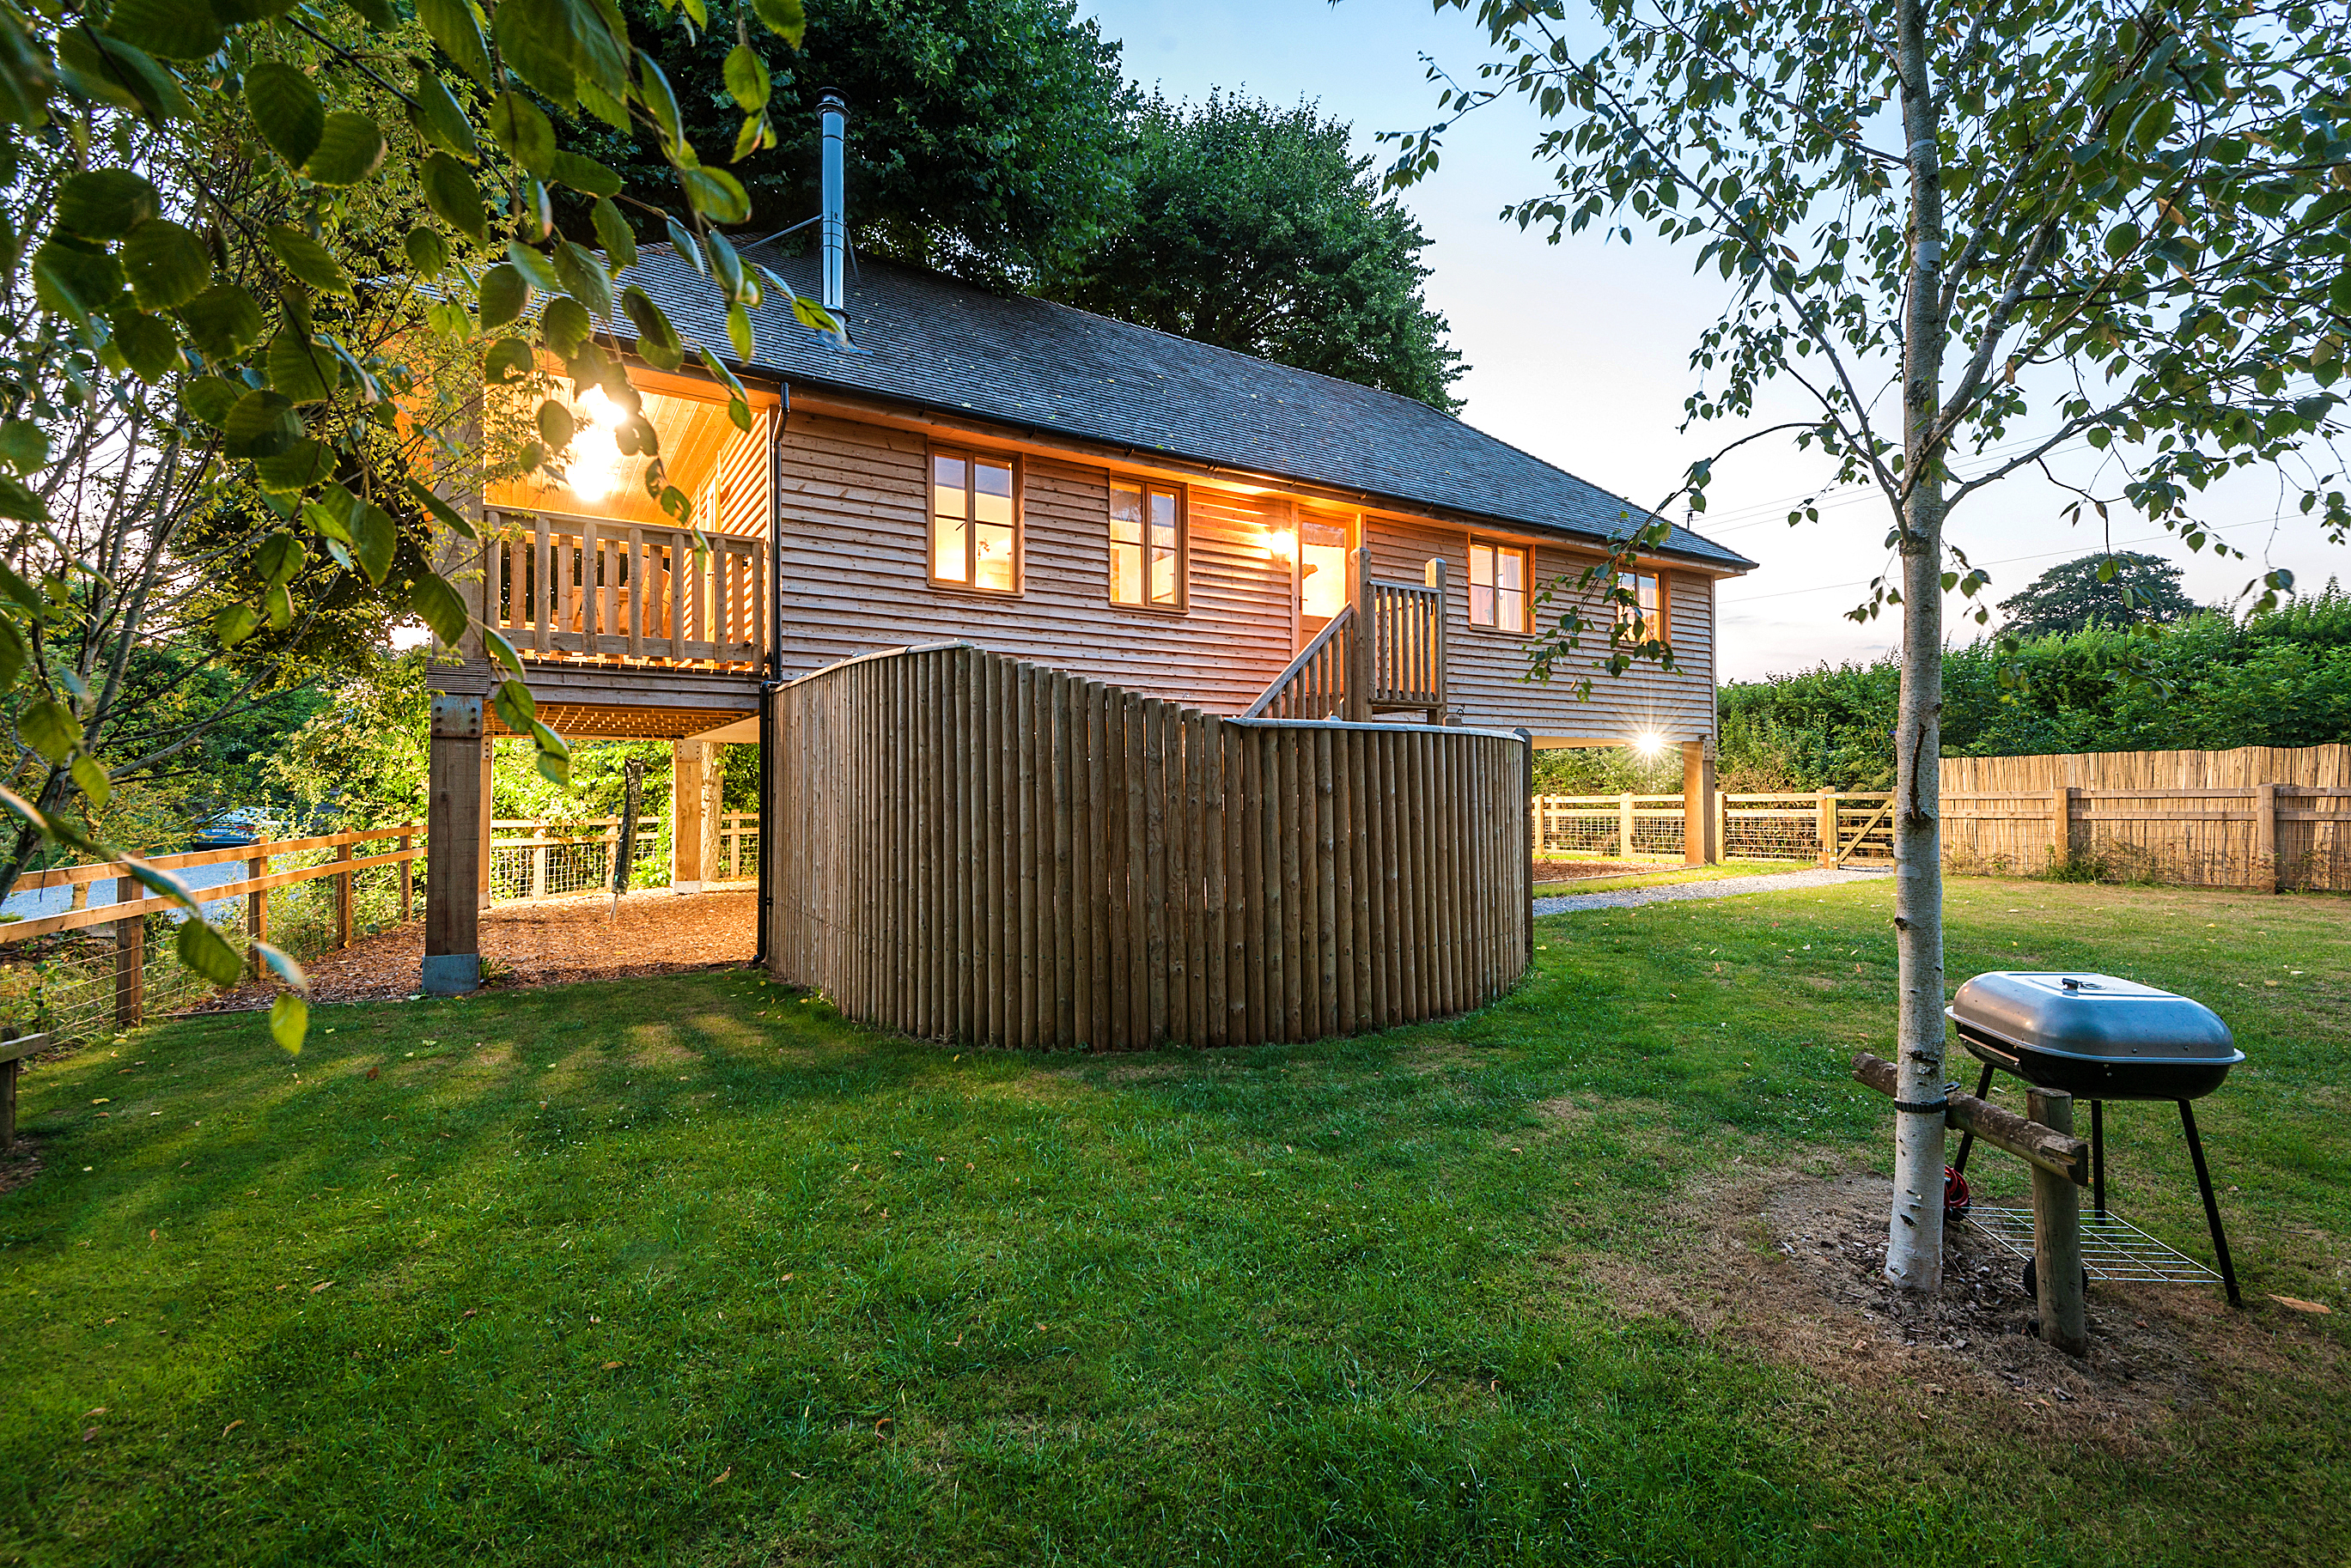 Holiday homes with a swimming pool plus barbecue  in Near the Quantock Hills and Exmoor, South West, West Country